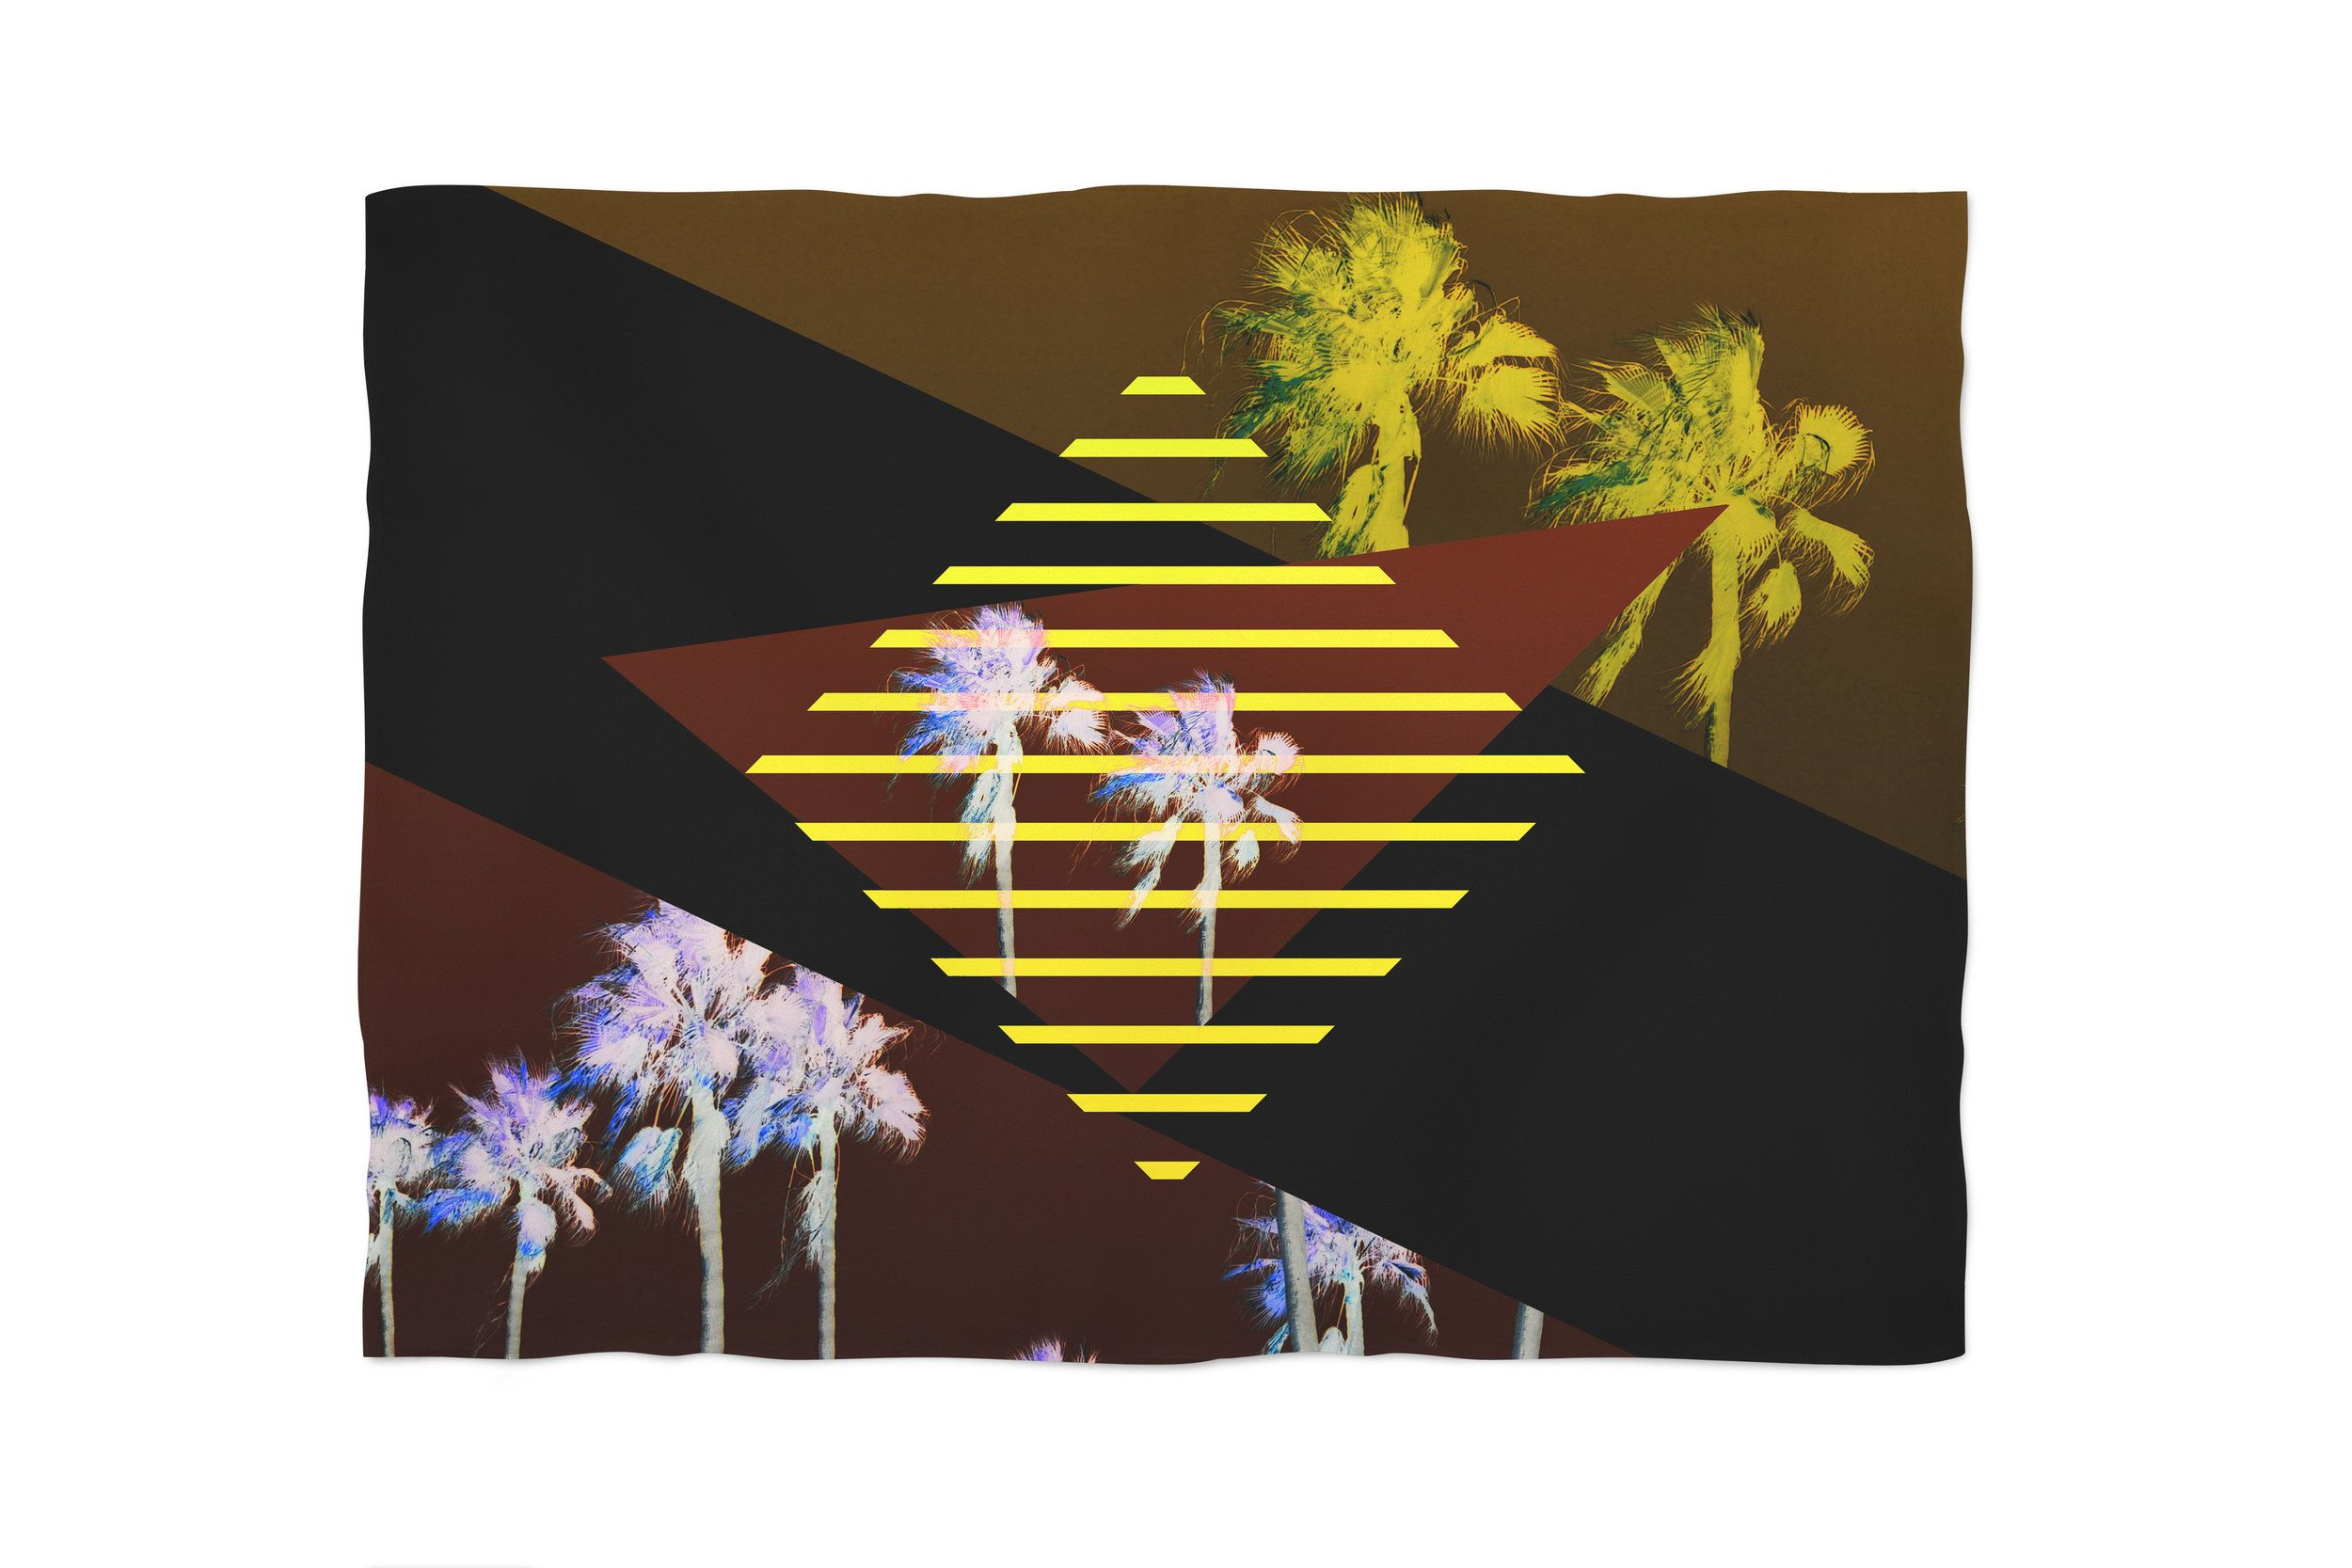 Retro inspired art deco style as a tribute to the neon life this